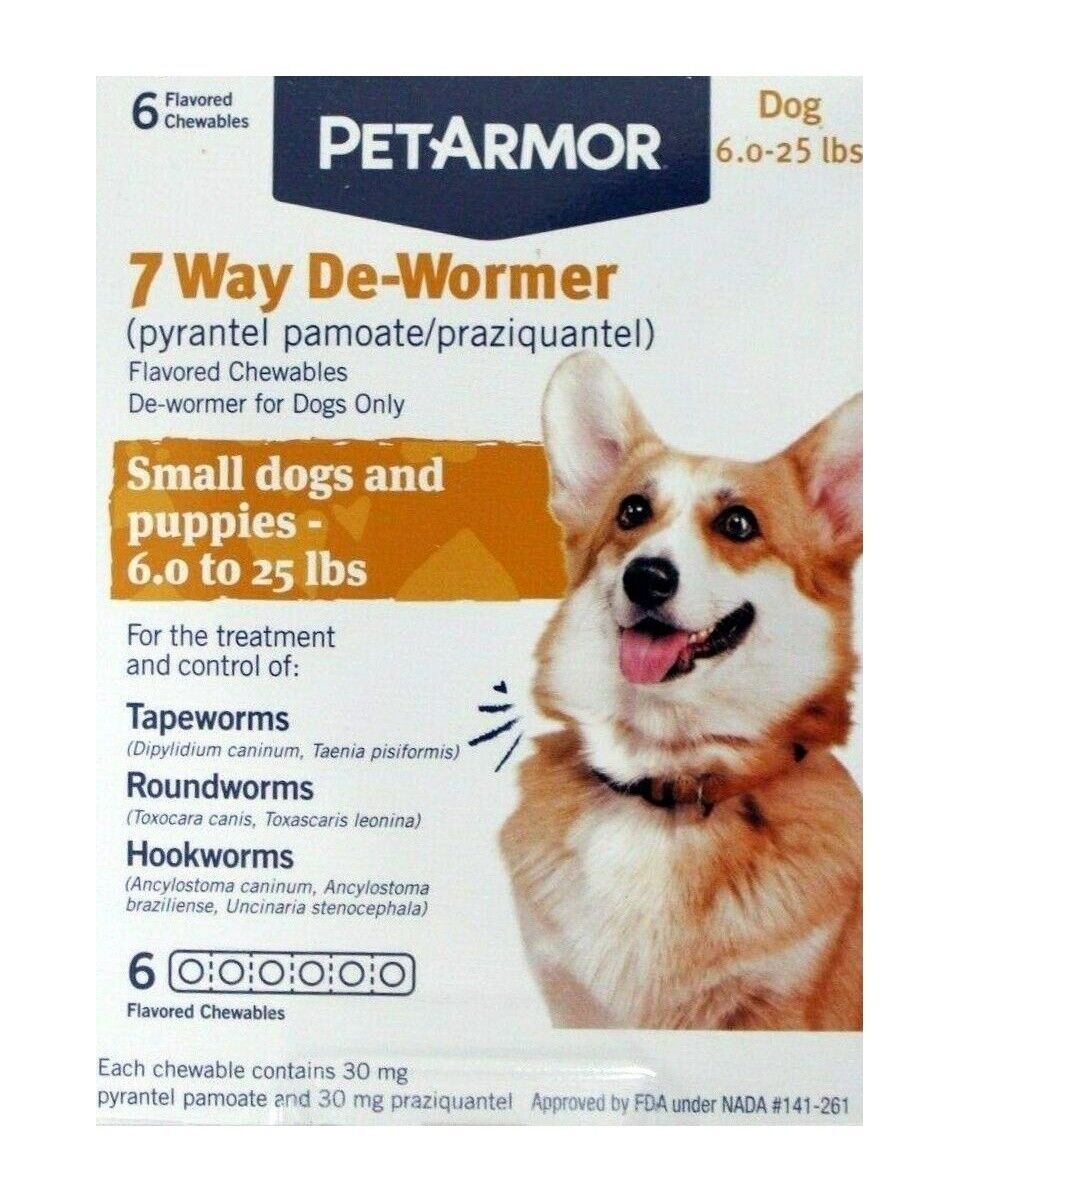 PetArmor 7 Way De-Wormer Small Dogs Puppies 6 To 25 Lbs 6 Tabs - RETAIL PACK - $12.99